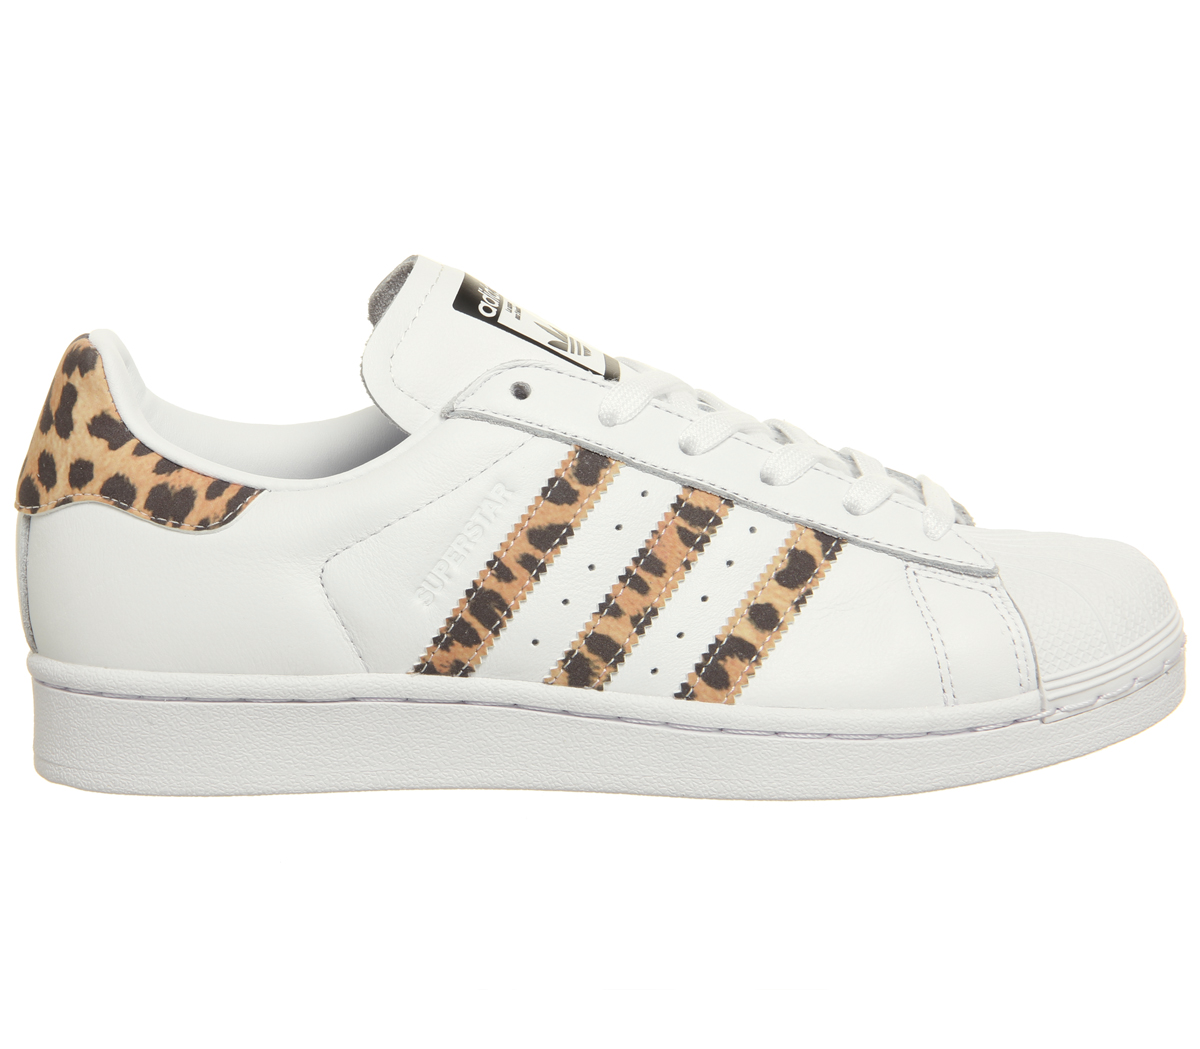 Wo Hommes Adidas Superstar 1 Trainers LEOPARD blanc  LEOPARD Trainers CORE Noir F Trainers Chaussures 9bcc87